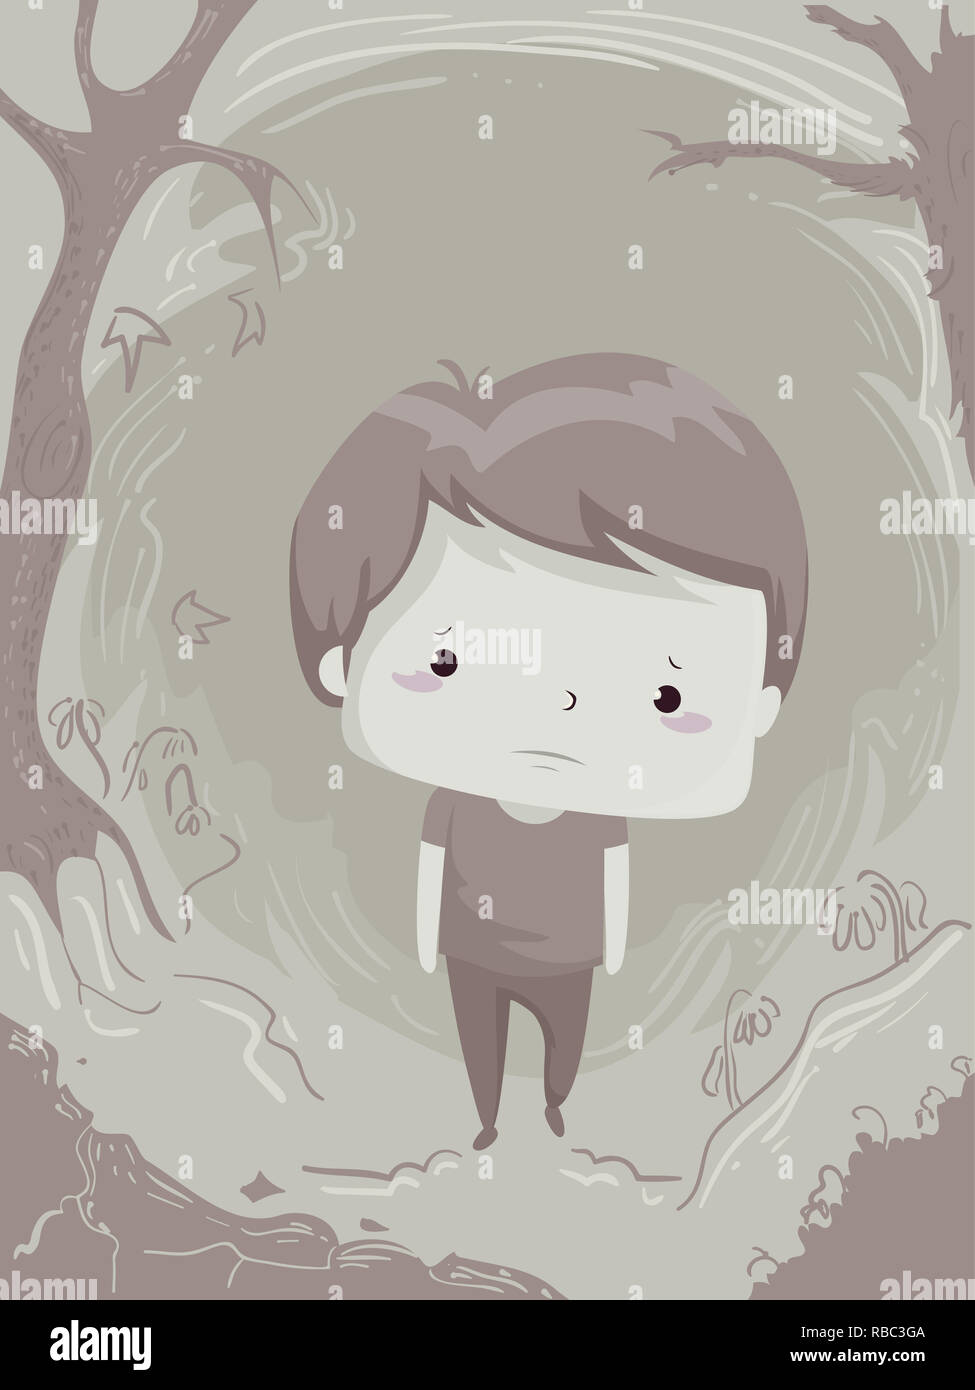 Illustration Of A Sad Kid Boy Walking Alone And Depressed In The Woods Stock Photo Alamy